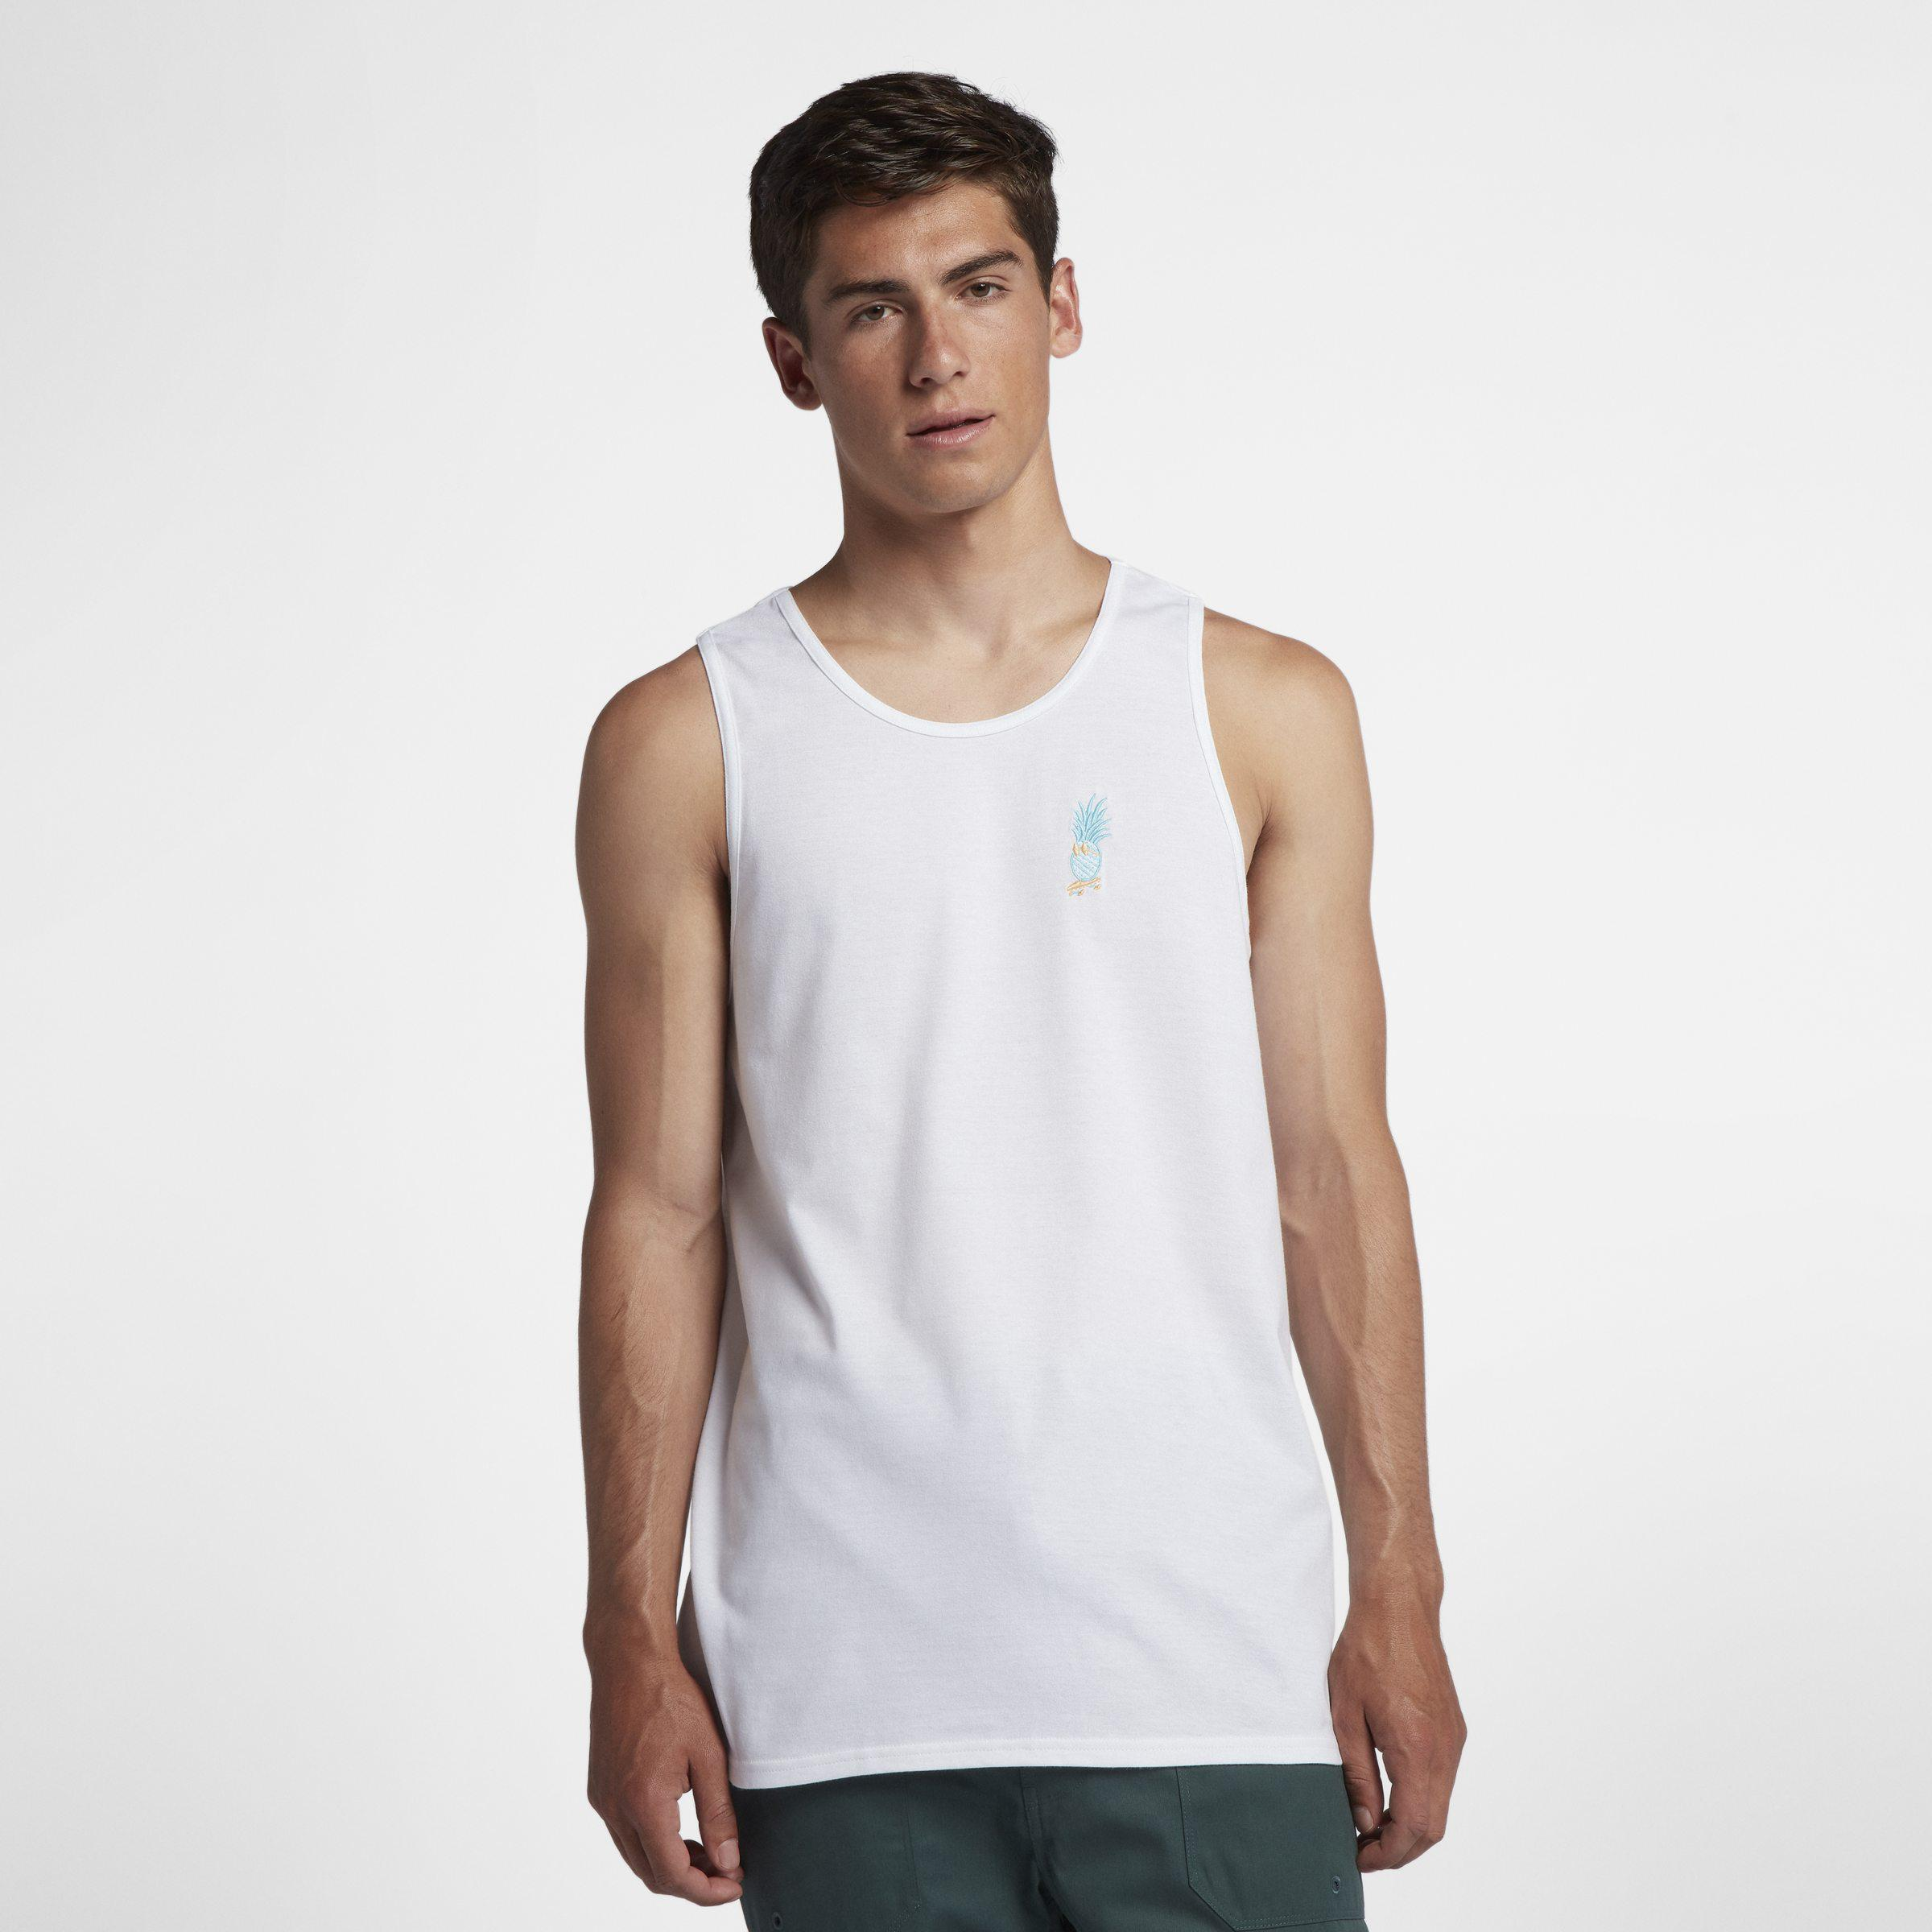 ede5f9fa59a54 Nike Hurley Premium Juicy Vibe Tank in White for Men - Lyst